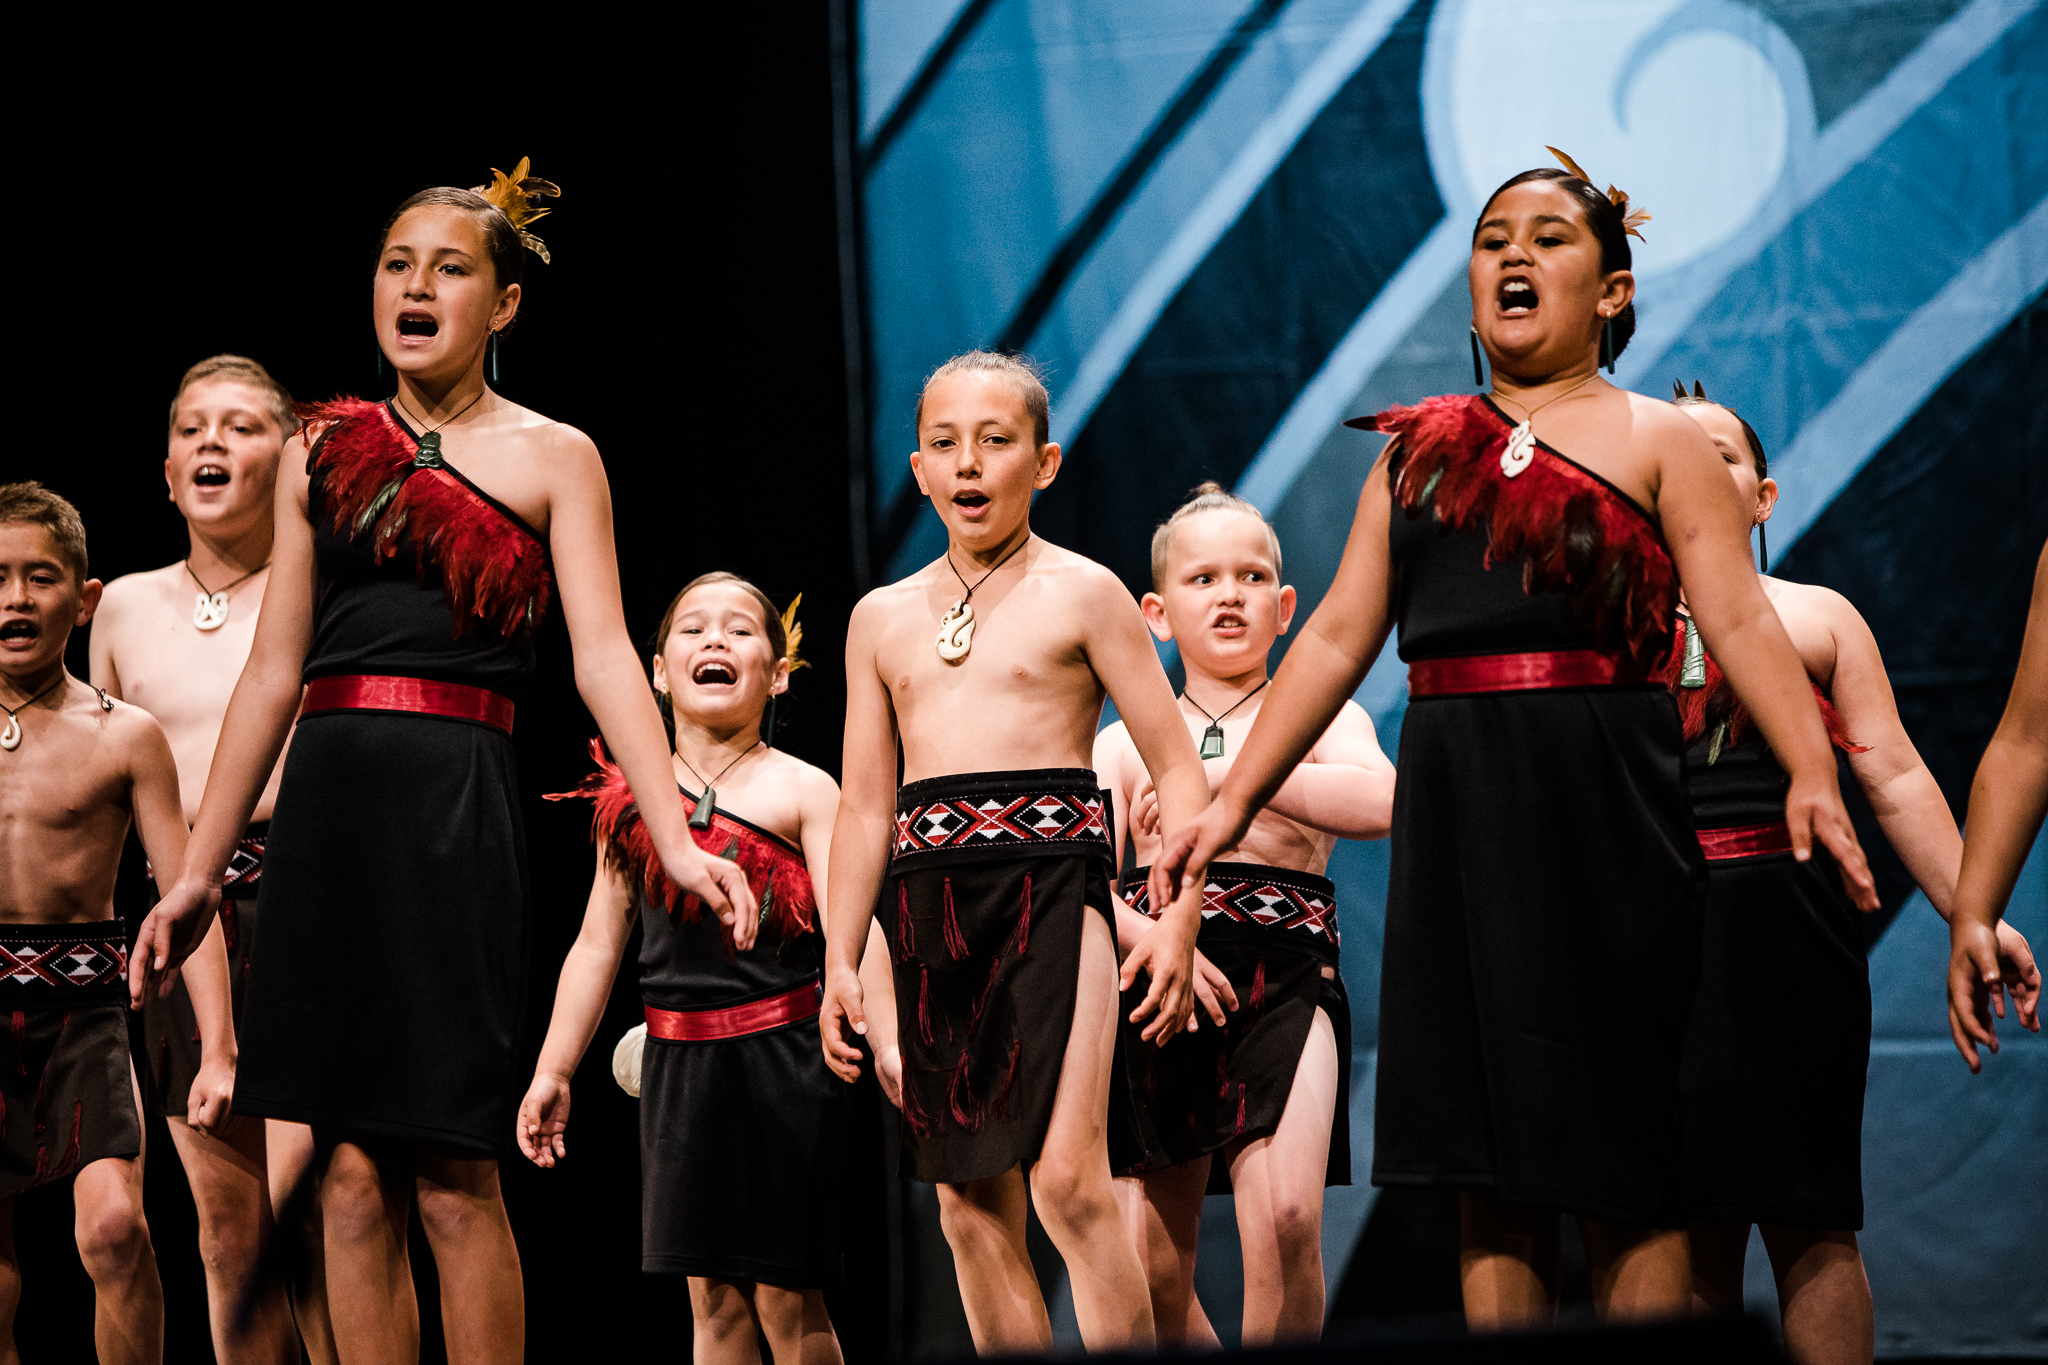 Hora Hora Primary School compete at Kapa Haka